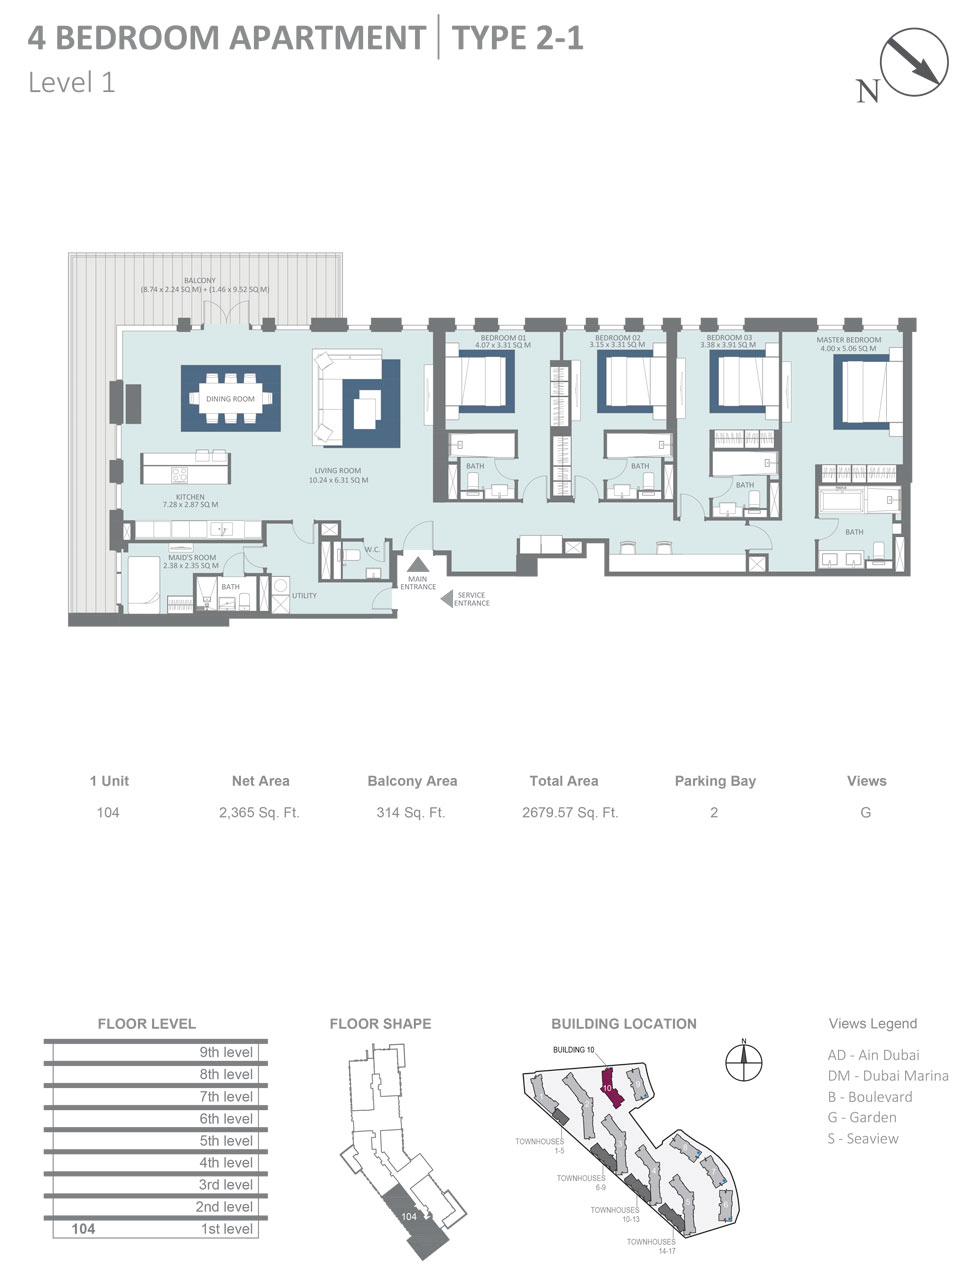 Building 10 - 4 Bedroom Apartment Type 2 - 1, Level 1, Size 2679  sq. ft.